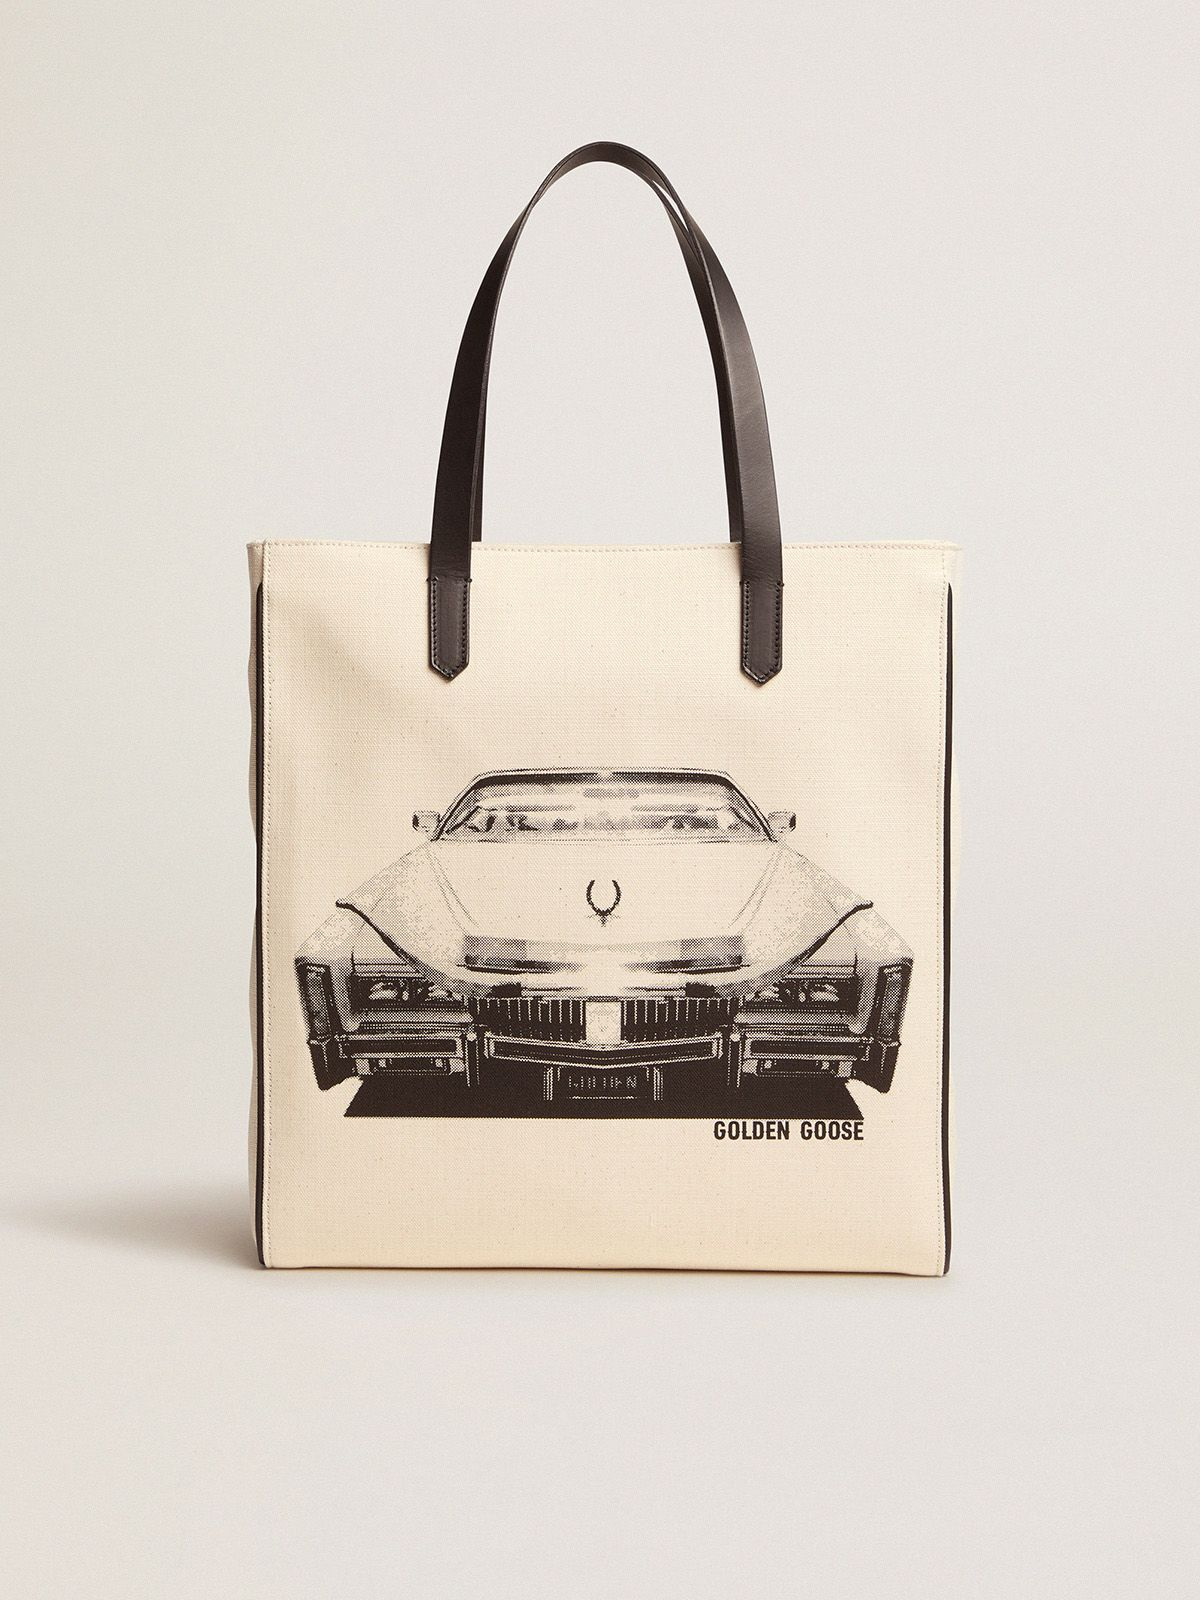 Golden Goose - Borsa California North-South stampa Cadillac in